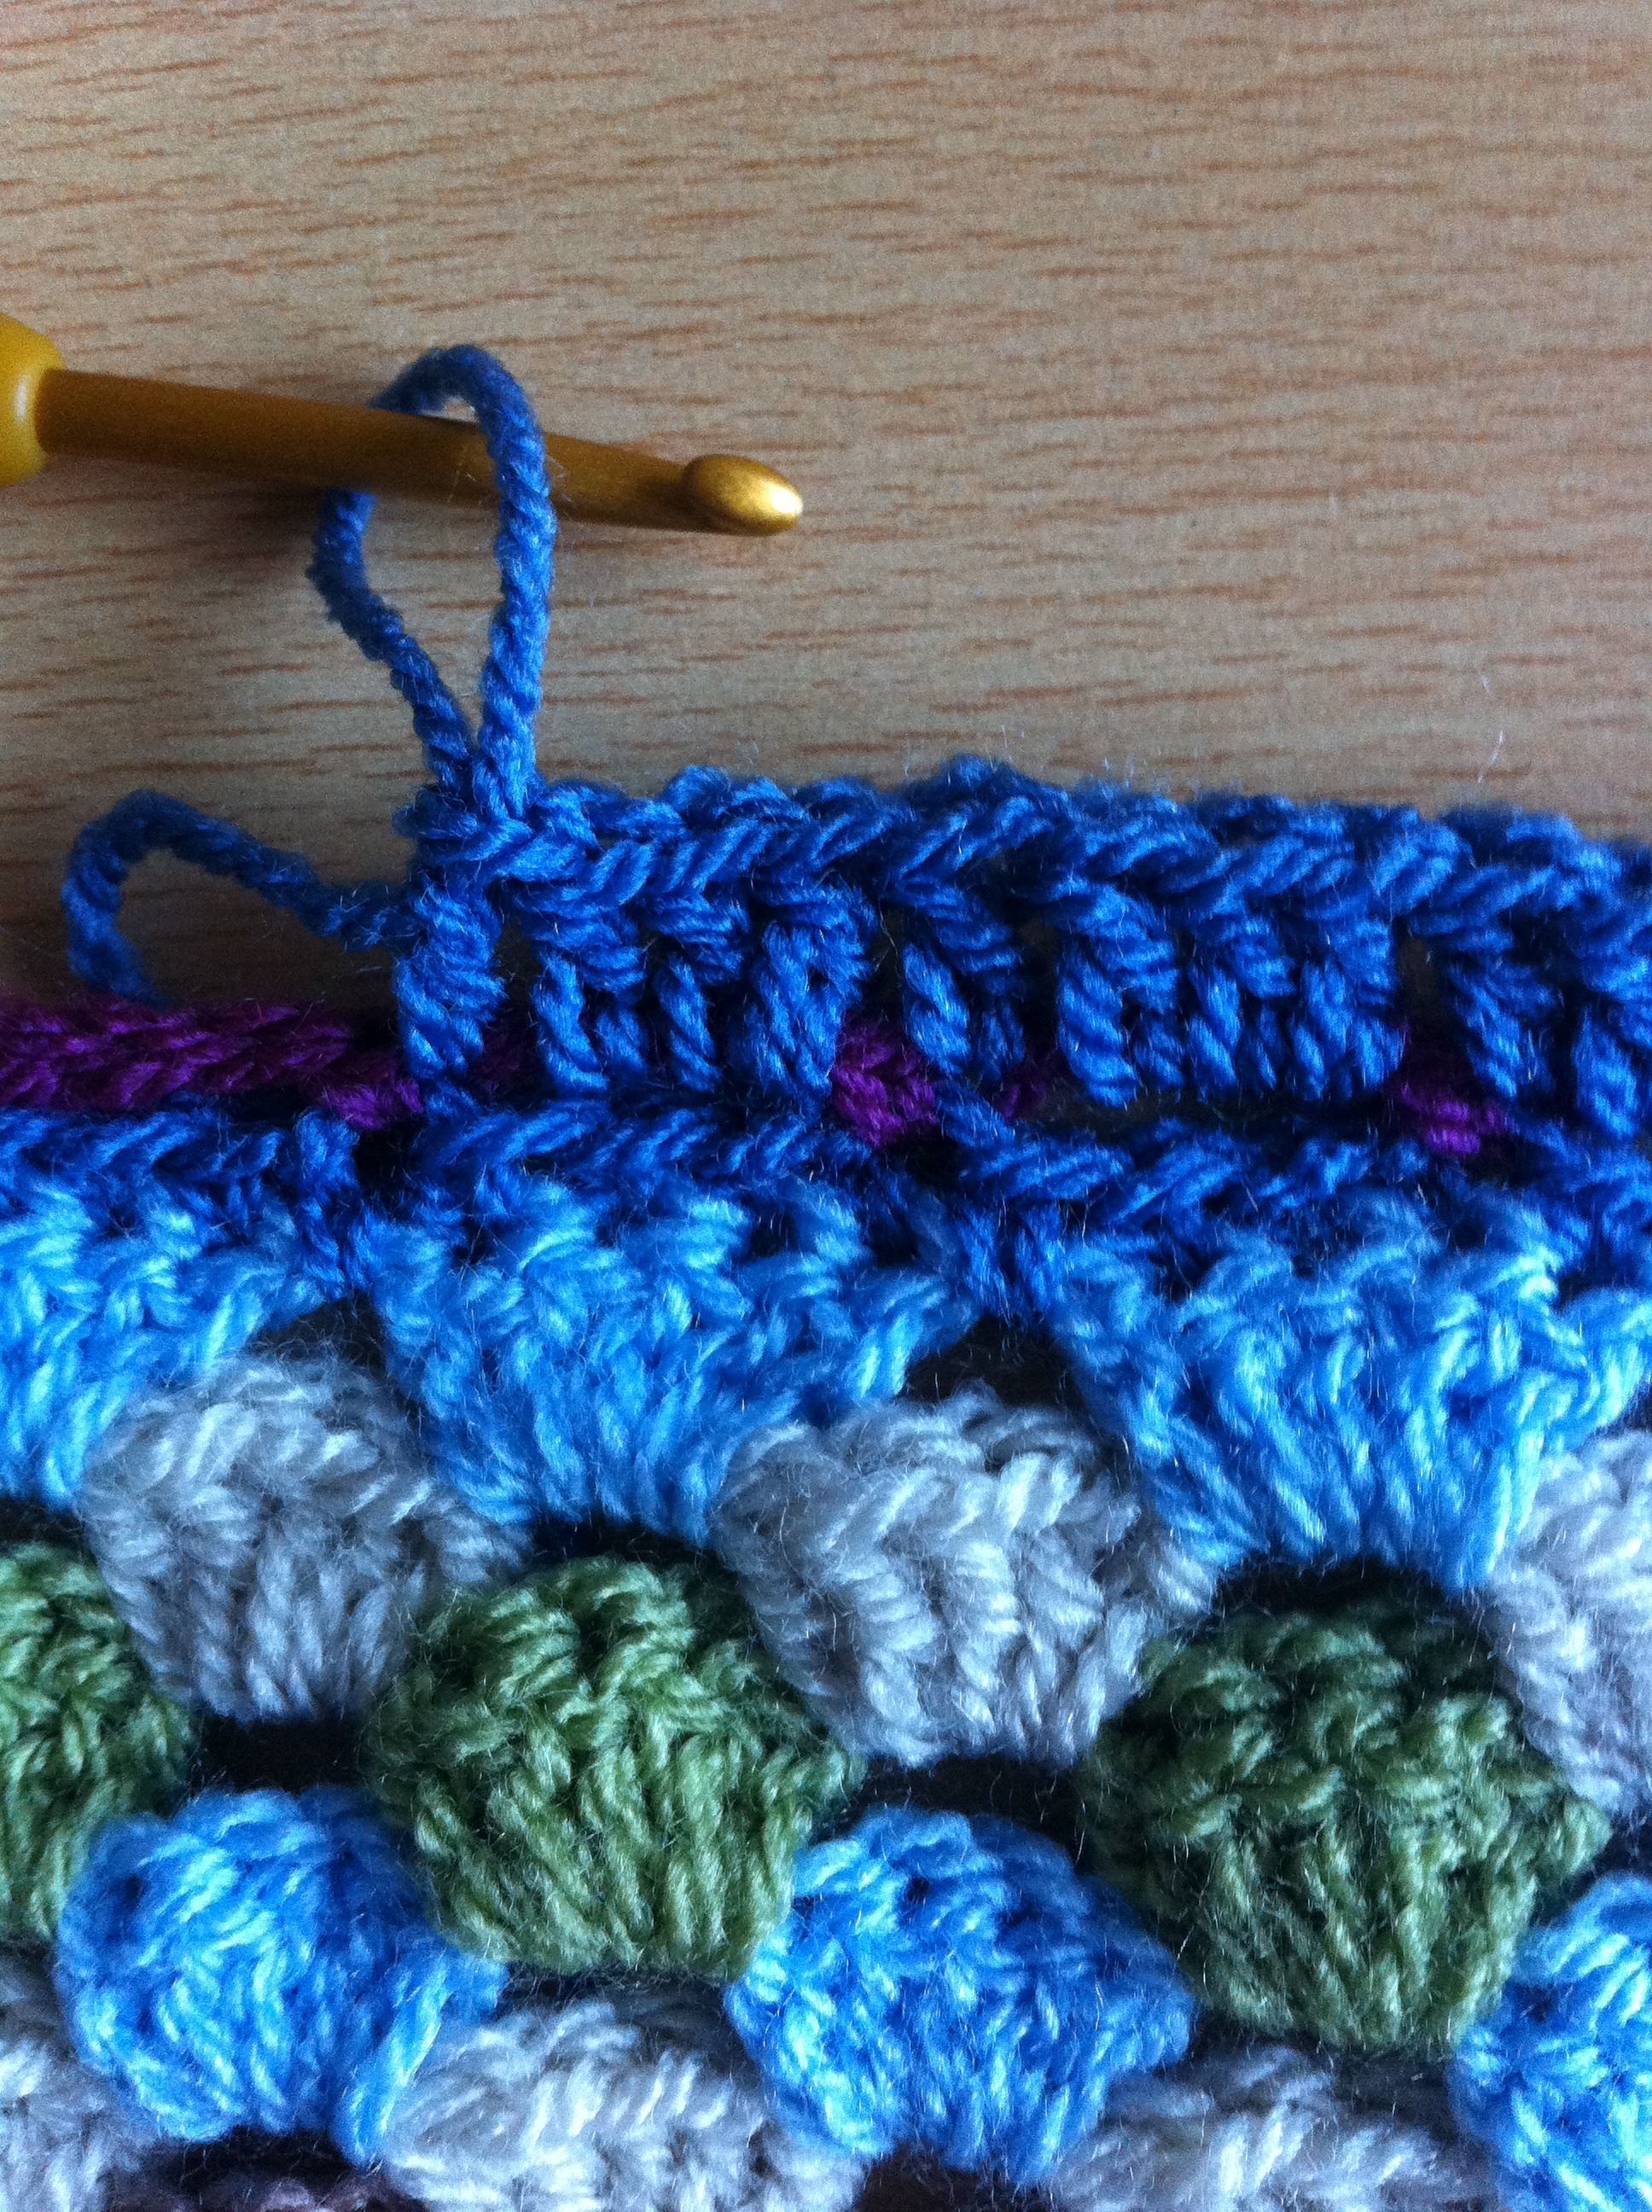 crochet border | crochetime